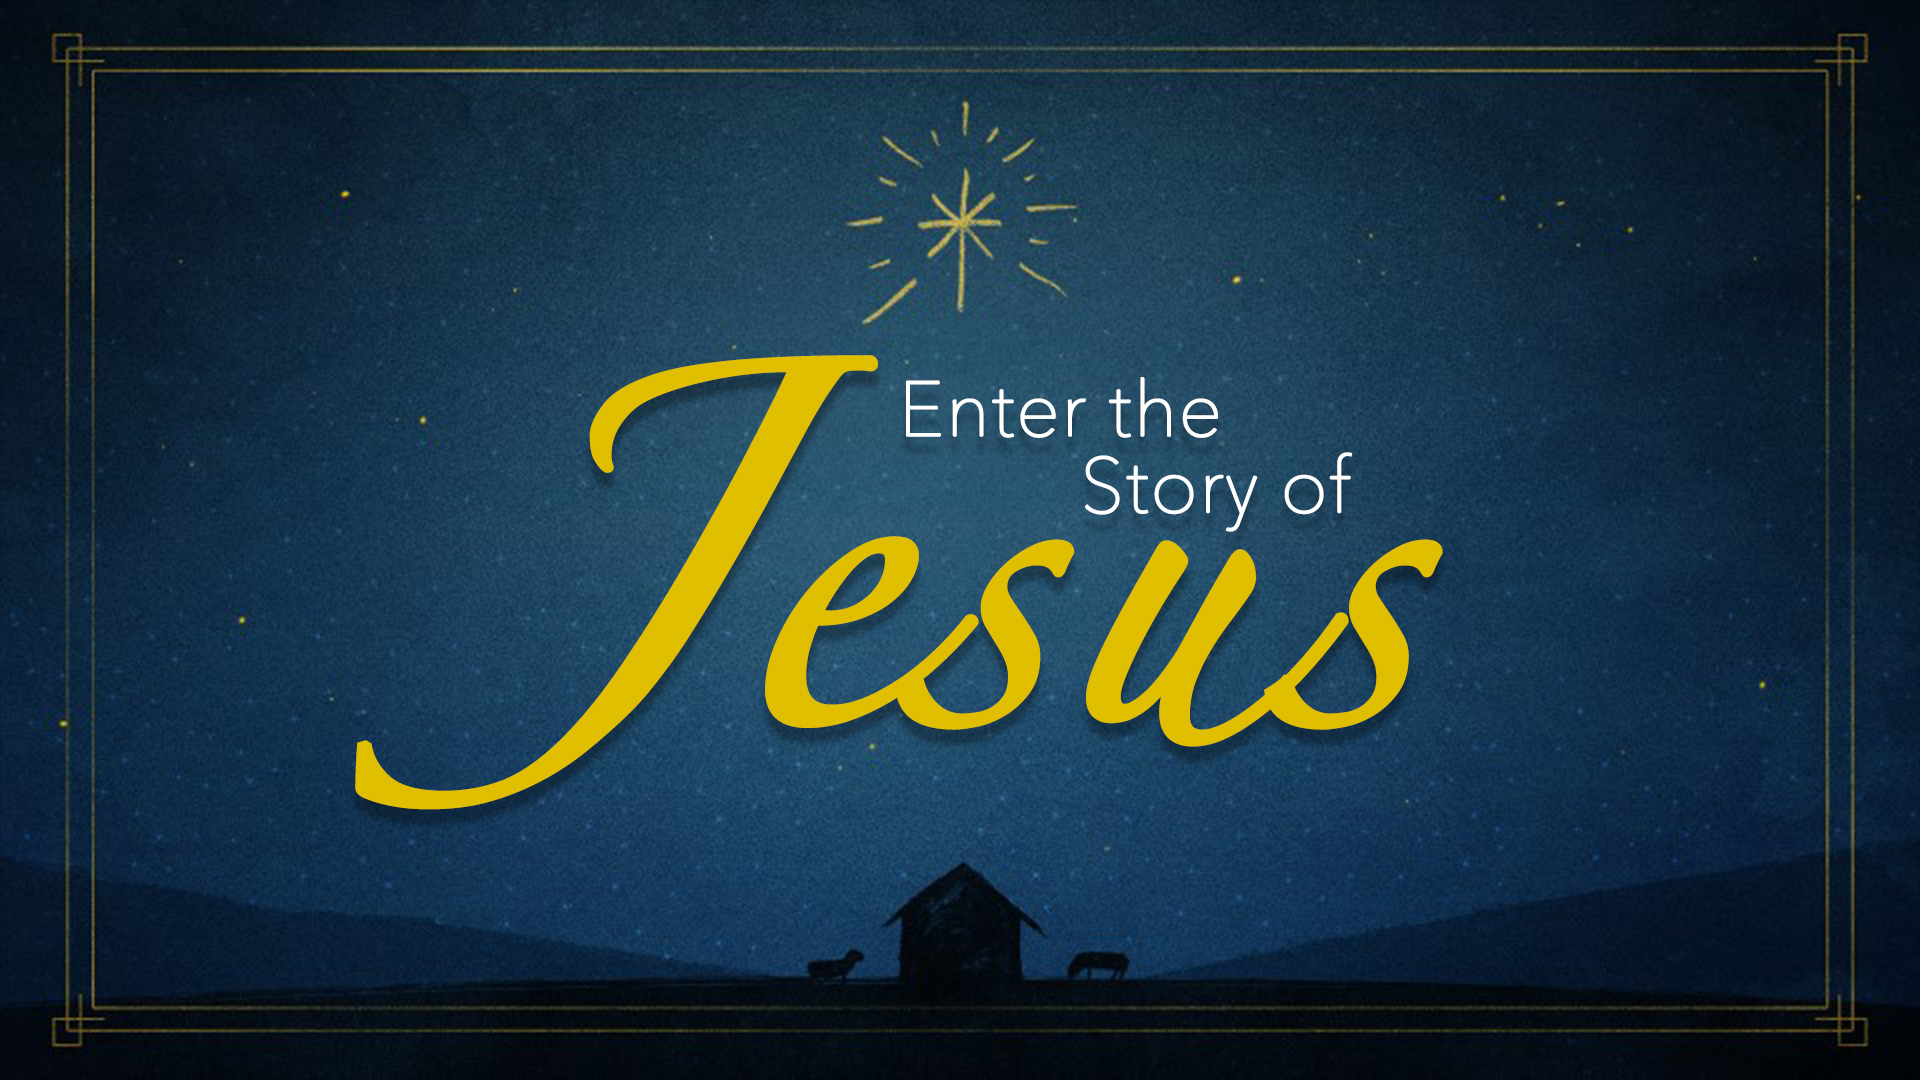 Enter the Story of Jesus 2.4 (1)